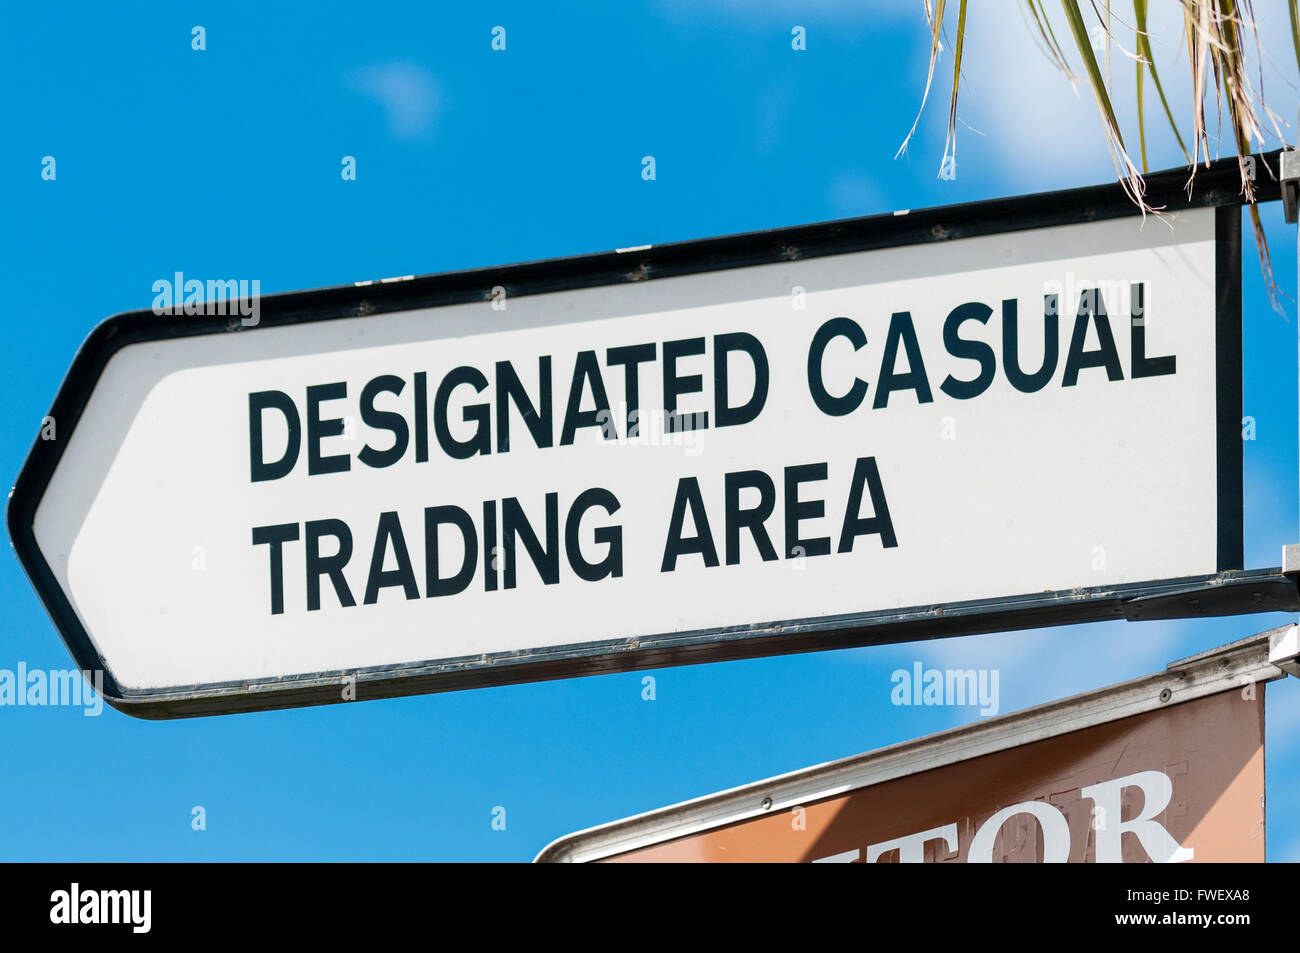 Direction sign for a 'Designated Casual Trading Area' for a town market. - Stock Image